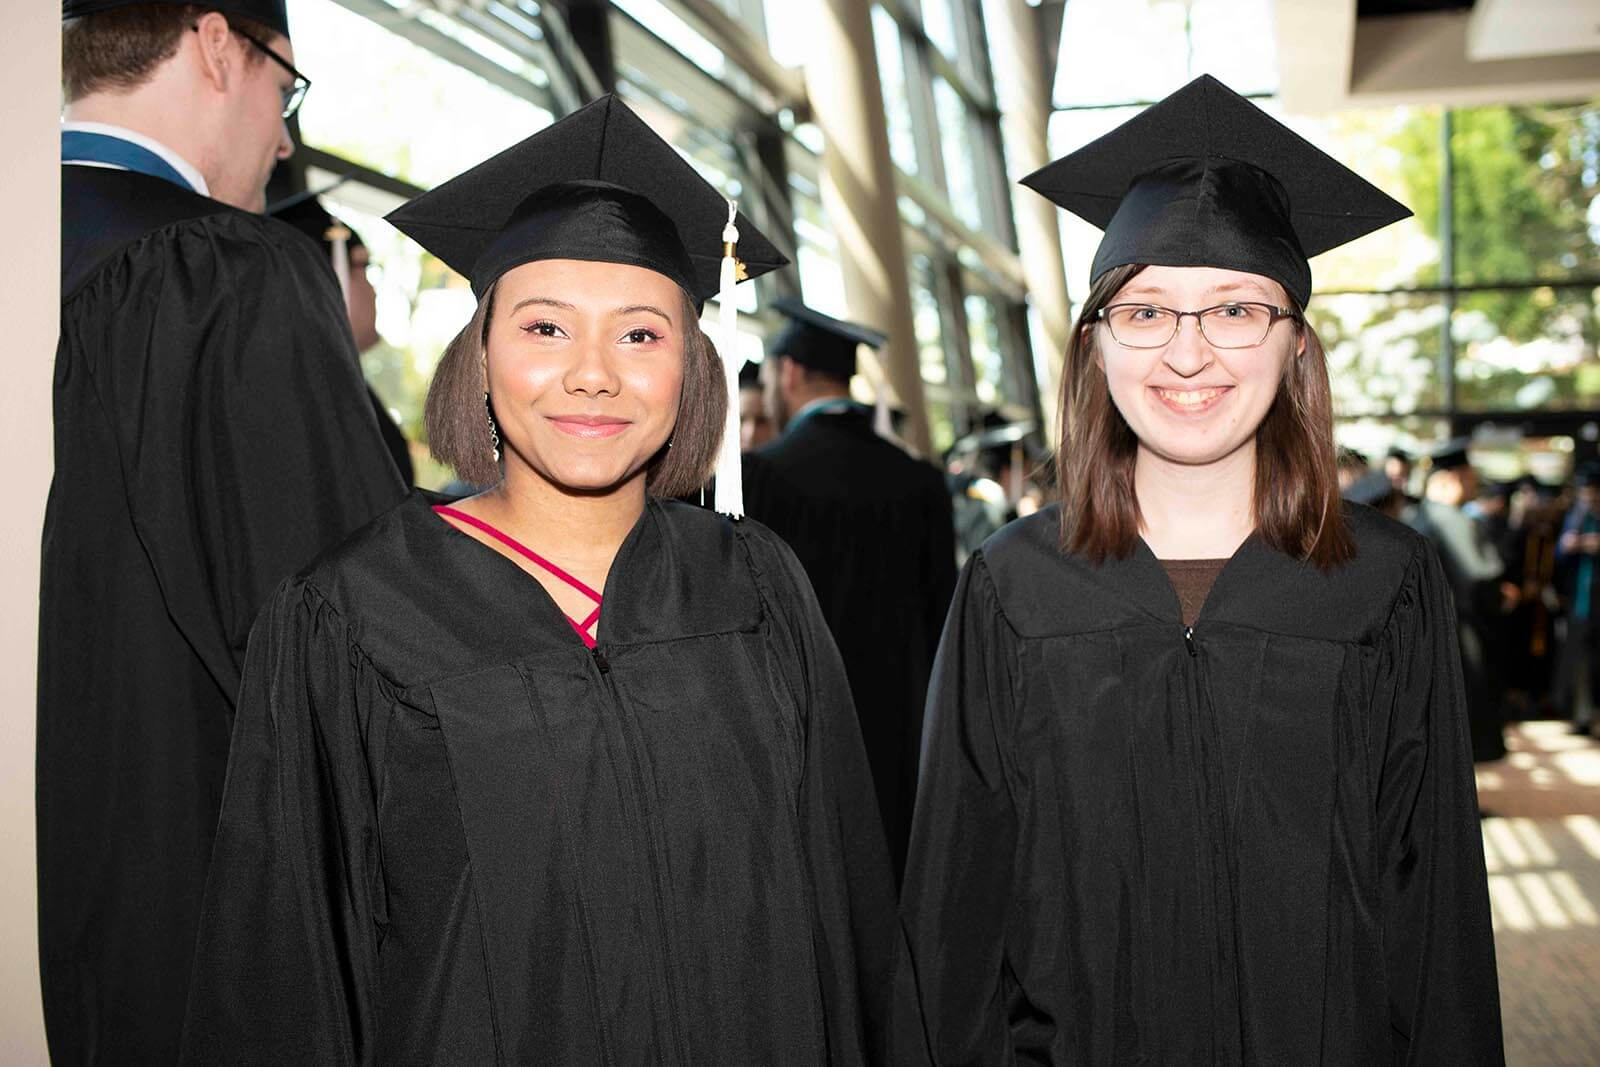 Two students in graduate garb smile for a photo in a convention center lobby area.